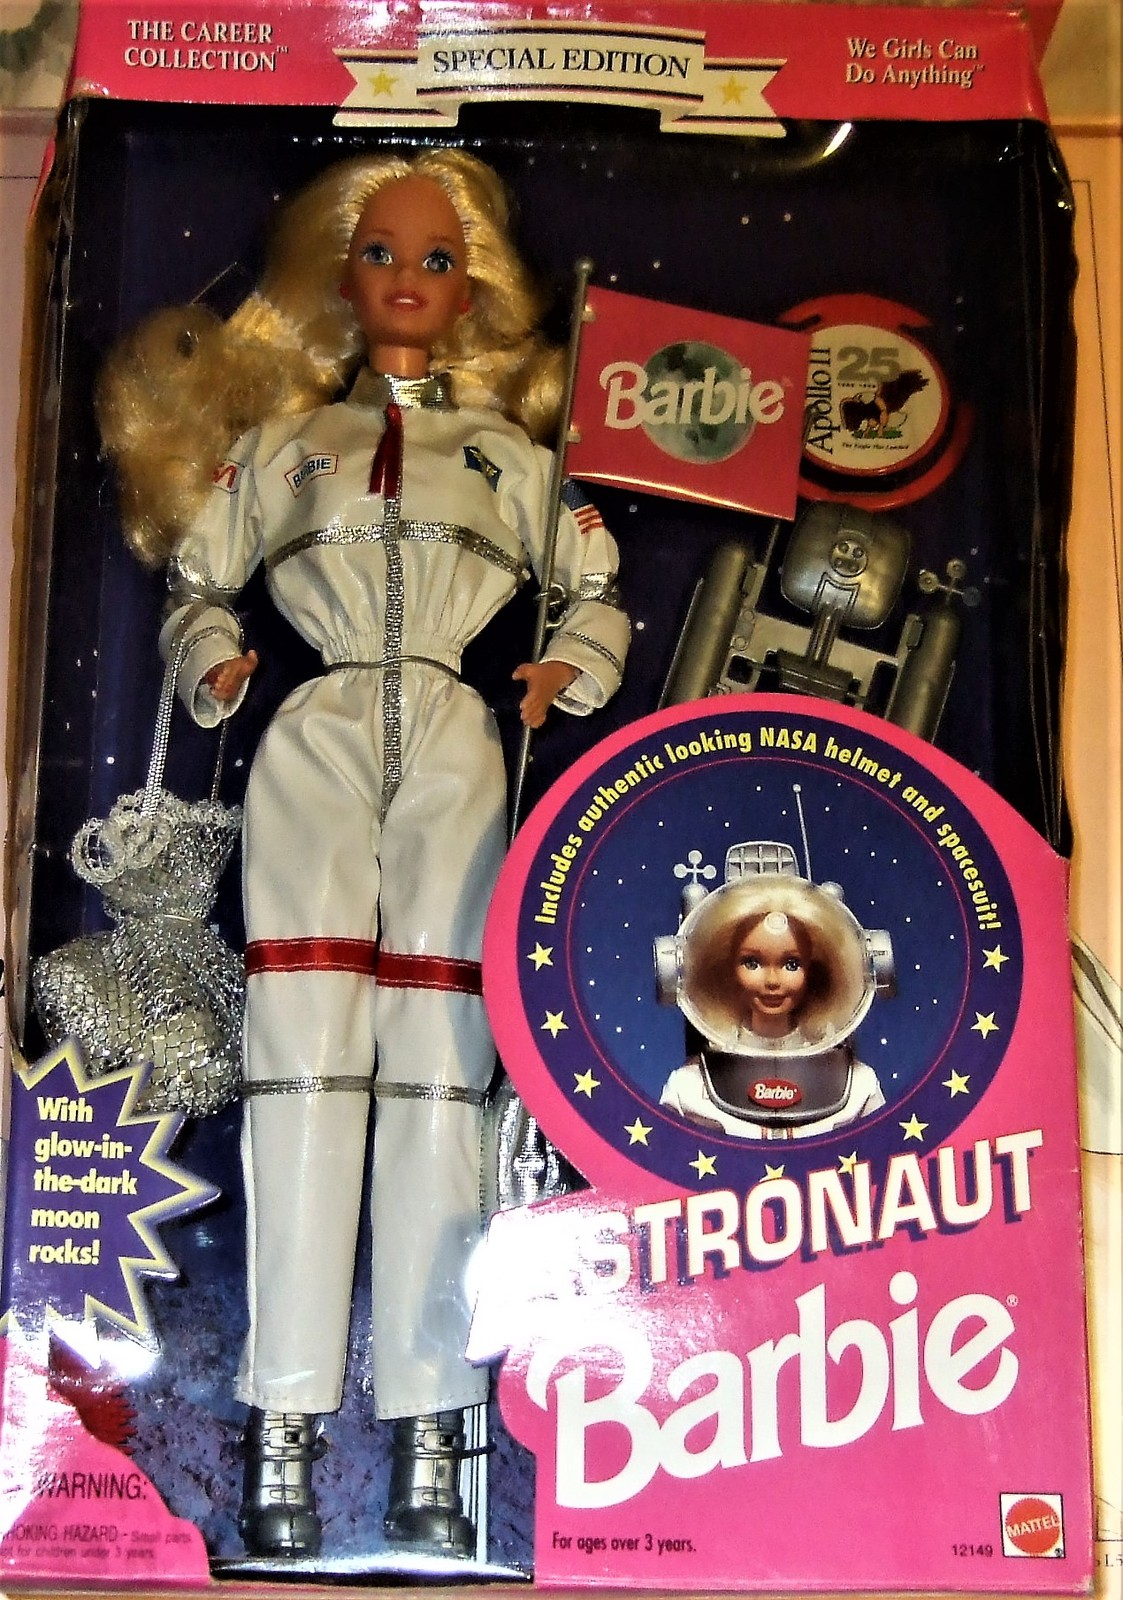 Barbie Doll - Astronaut Barbie, Career Collection, Special Edition, 1994